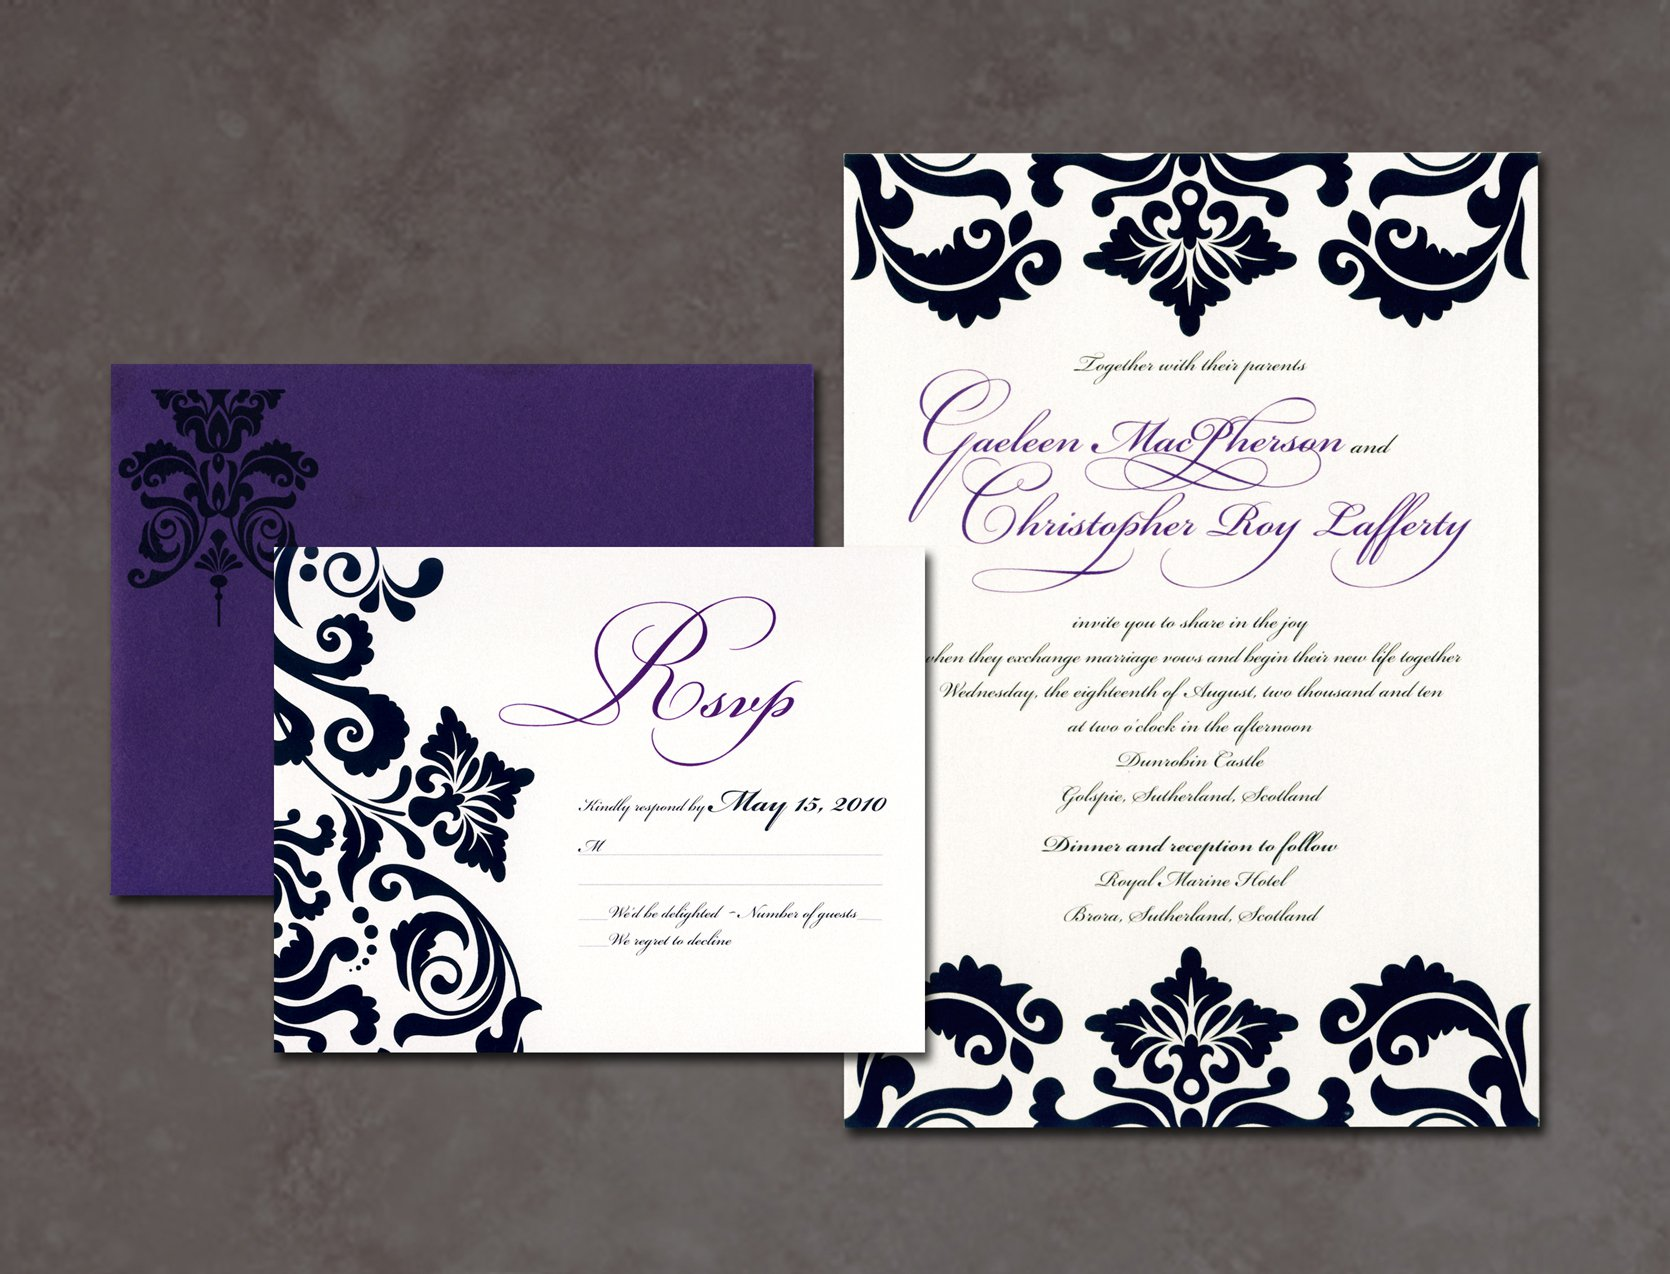 Wedding Invitation Templates – Classic Wedding Invitation Designs